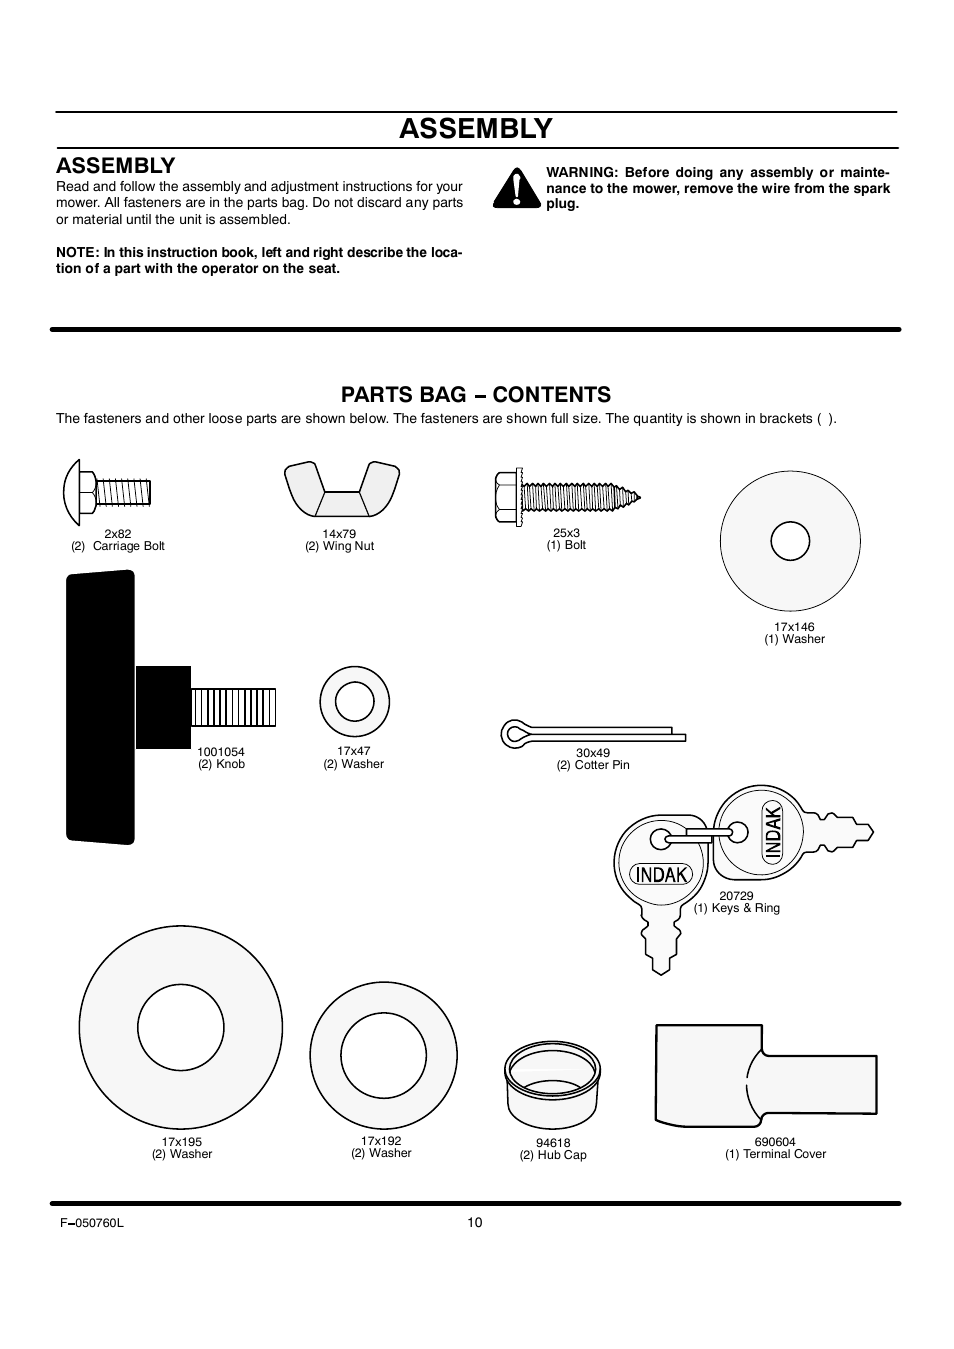 Assembly, Parts bag contents | Rover Clipper 405606x108A User Manual | Page  10 / 52